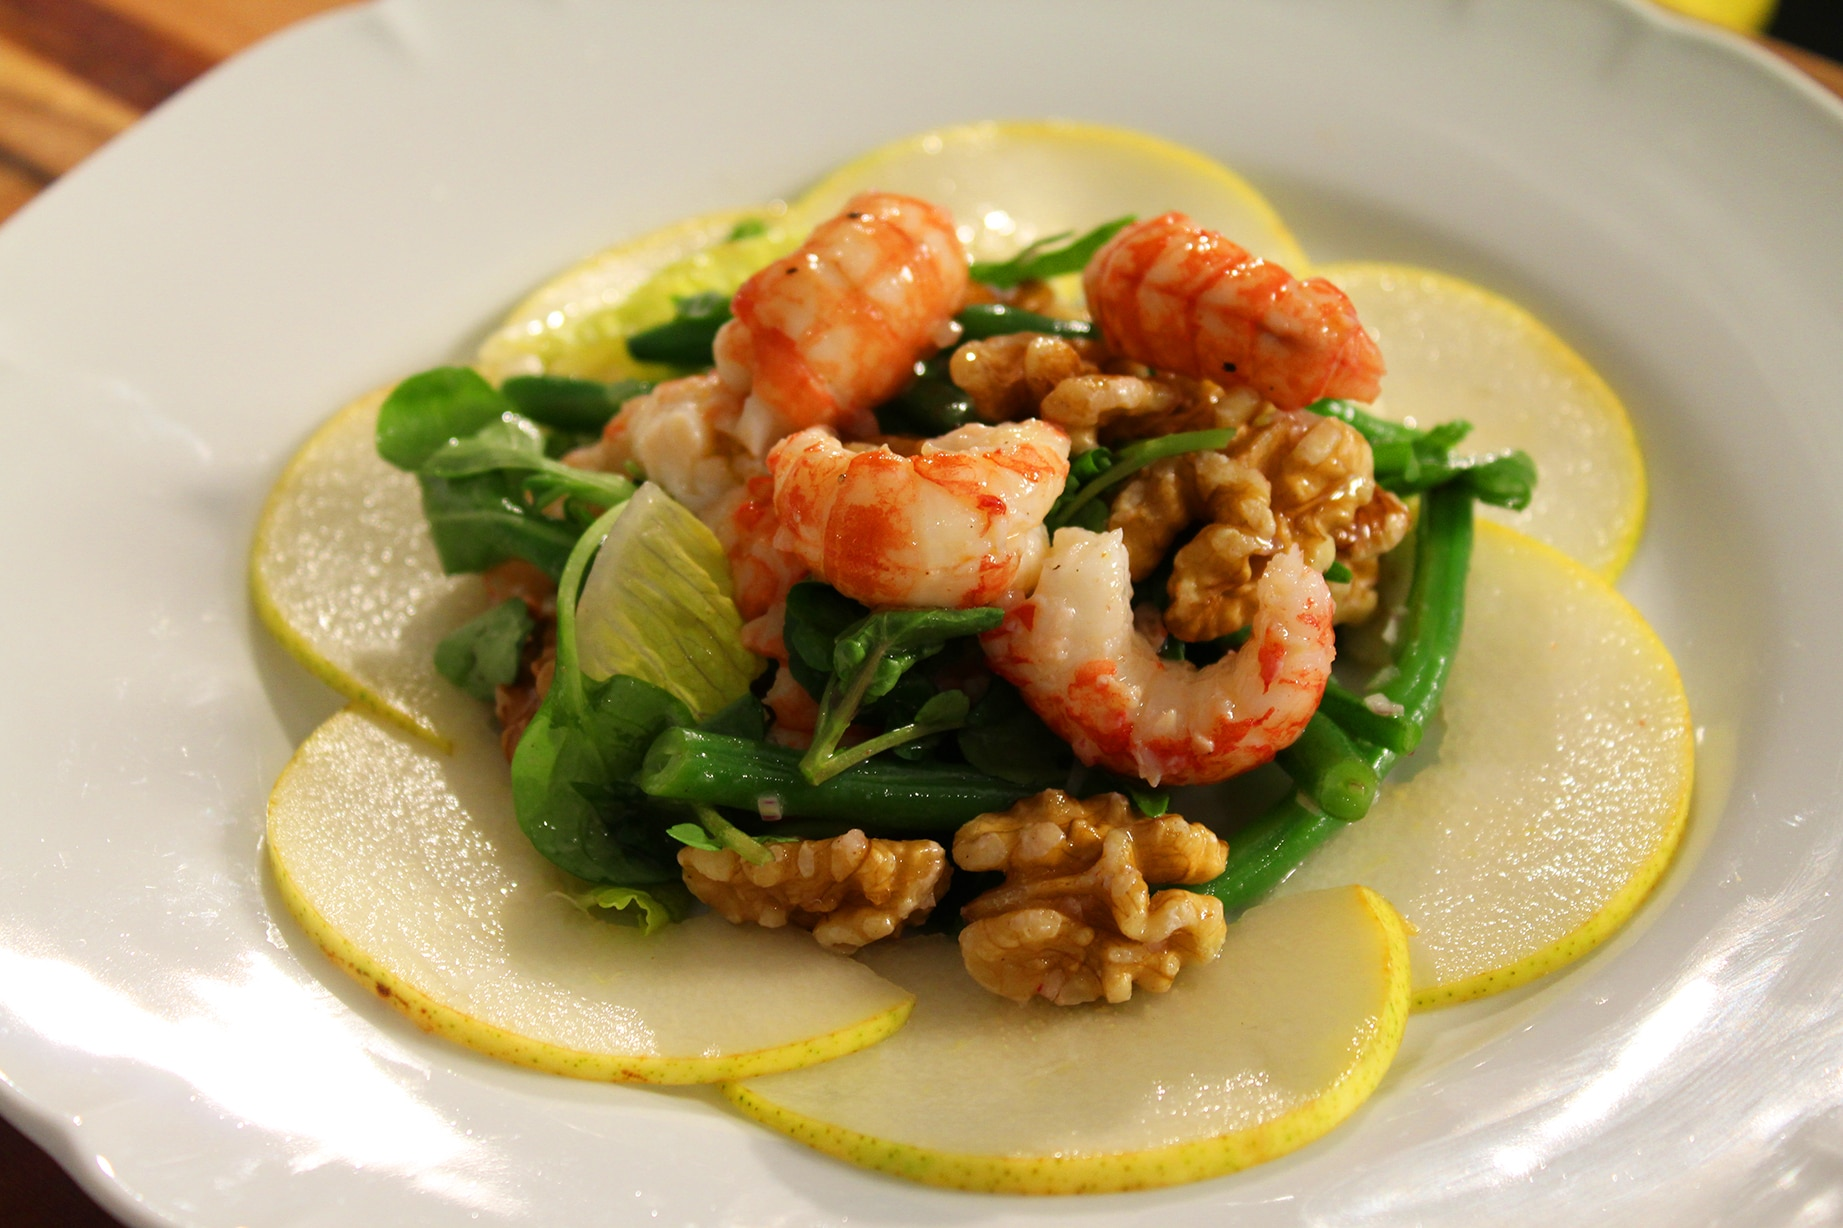 Gourmet Yabby Salad With Pears And Walnuts Recipe Sbs Food